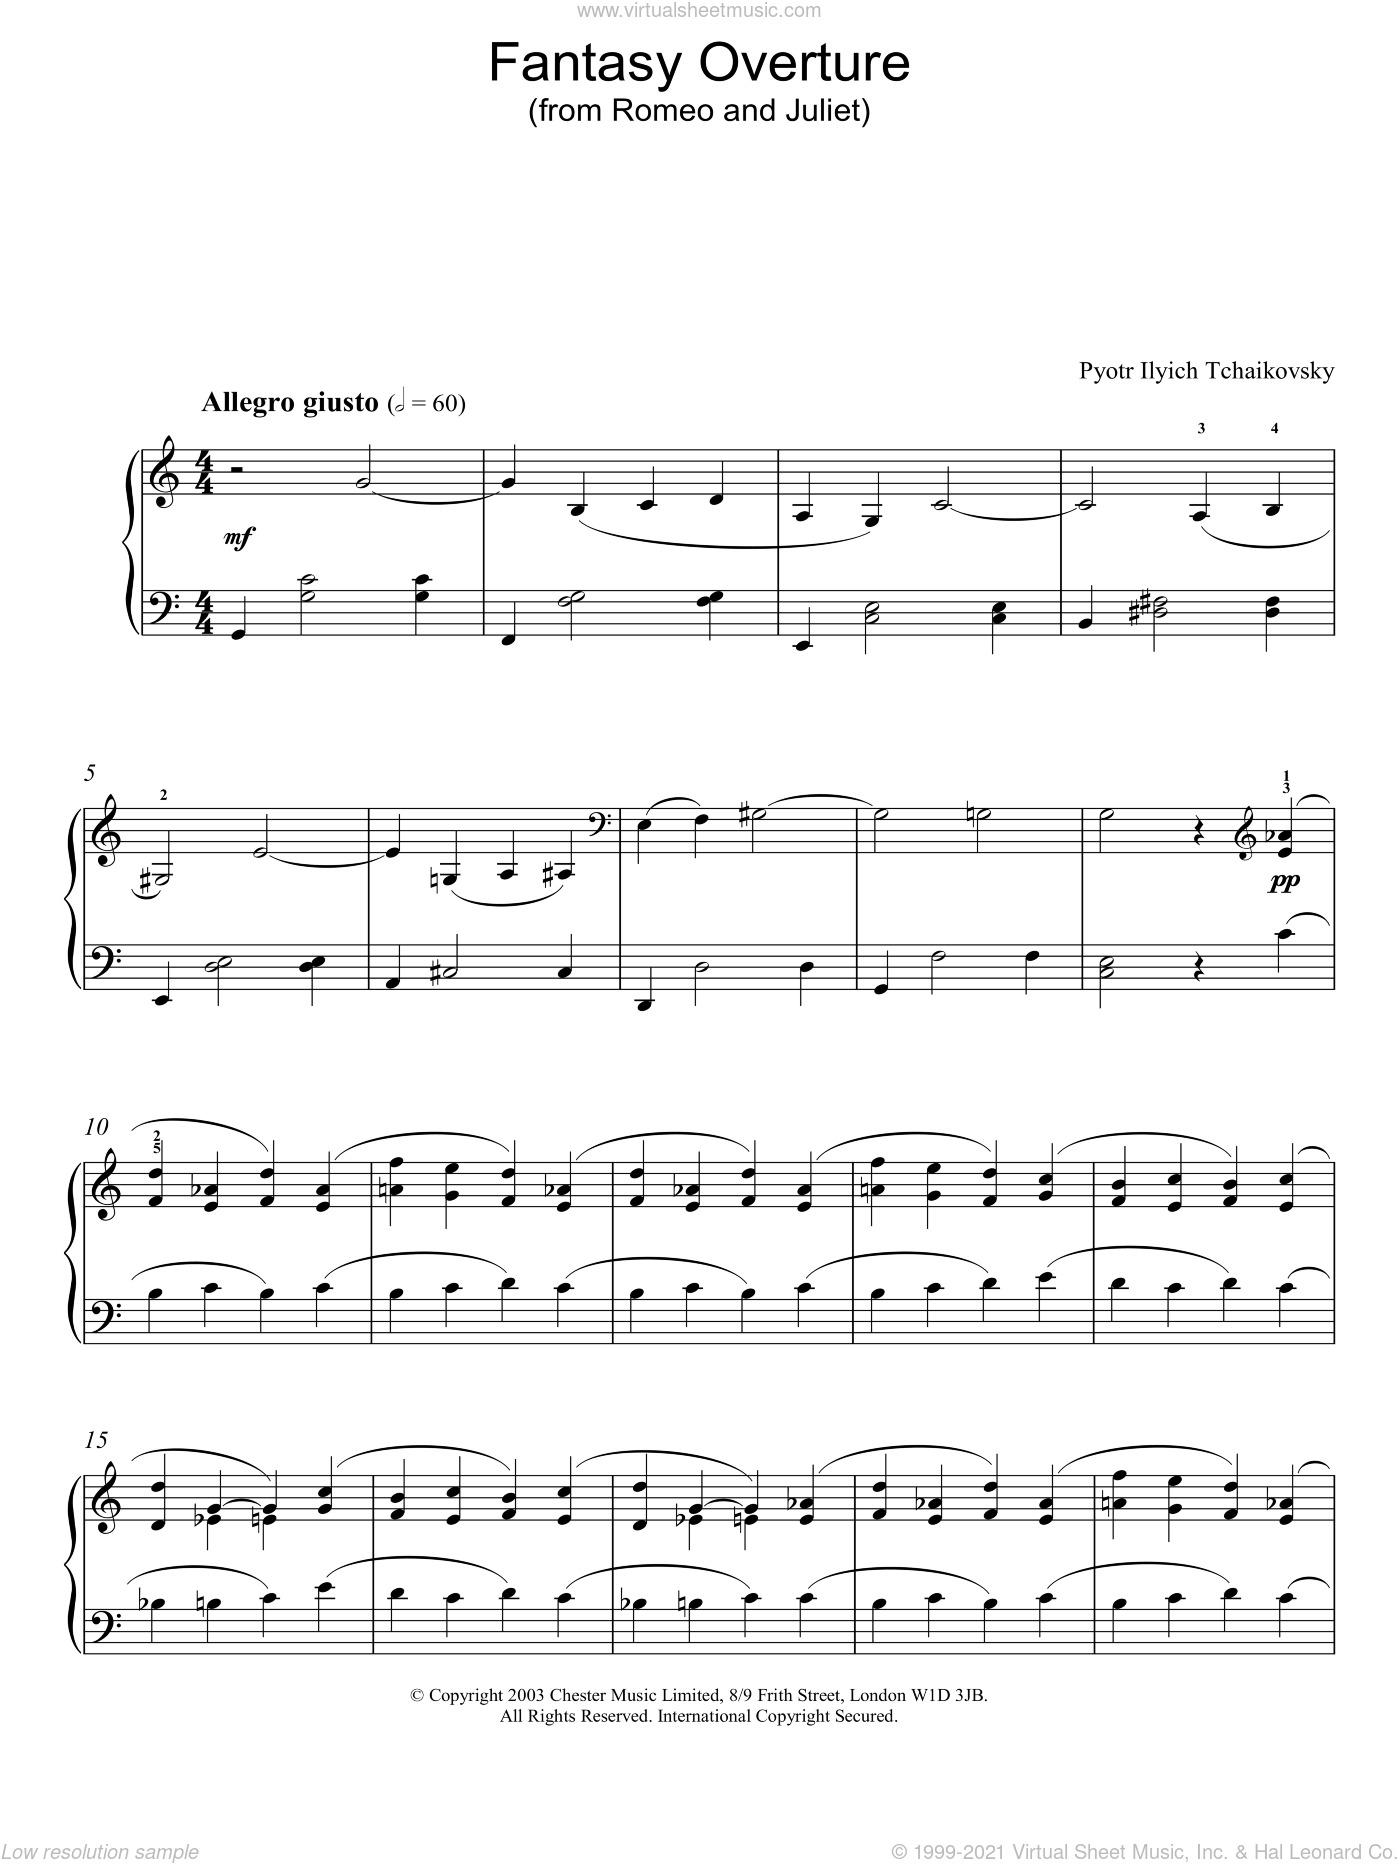 Fantasy Overture (from Romeo And Juliet) sheet music for piano solo by Pyotr Ilyich Tchaikovsky, classical score, intermediate skill level